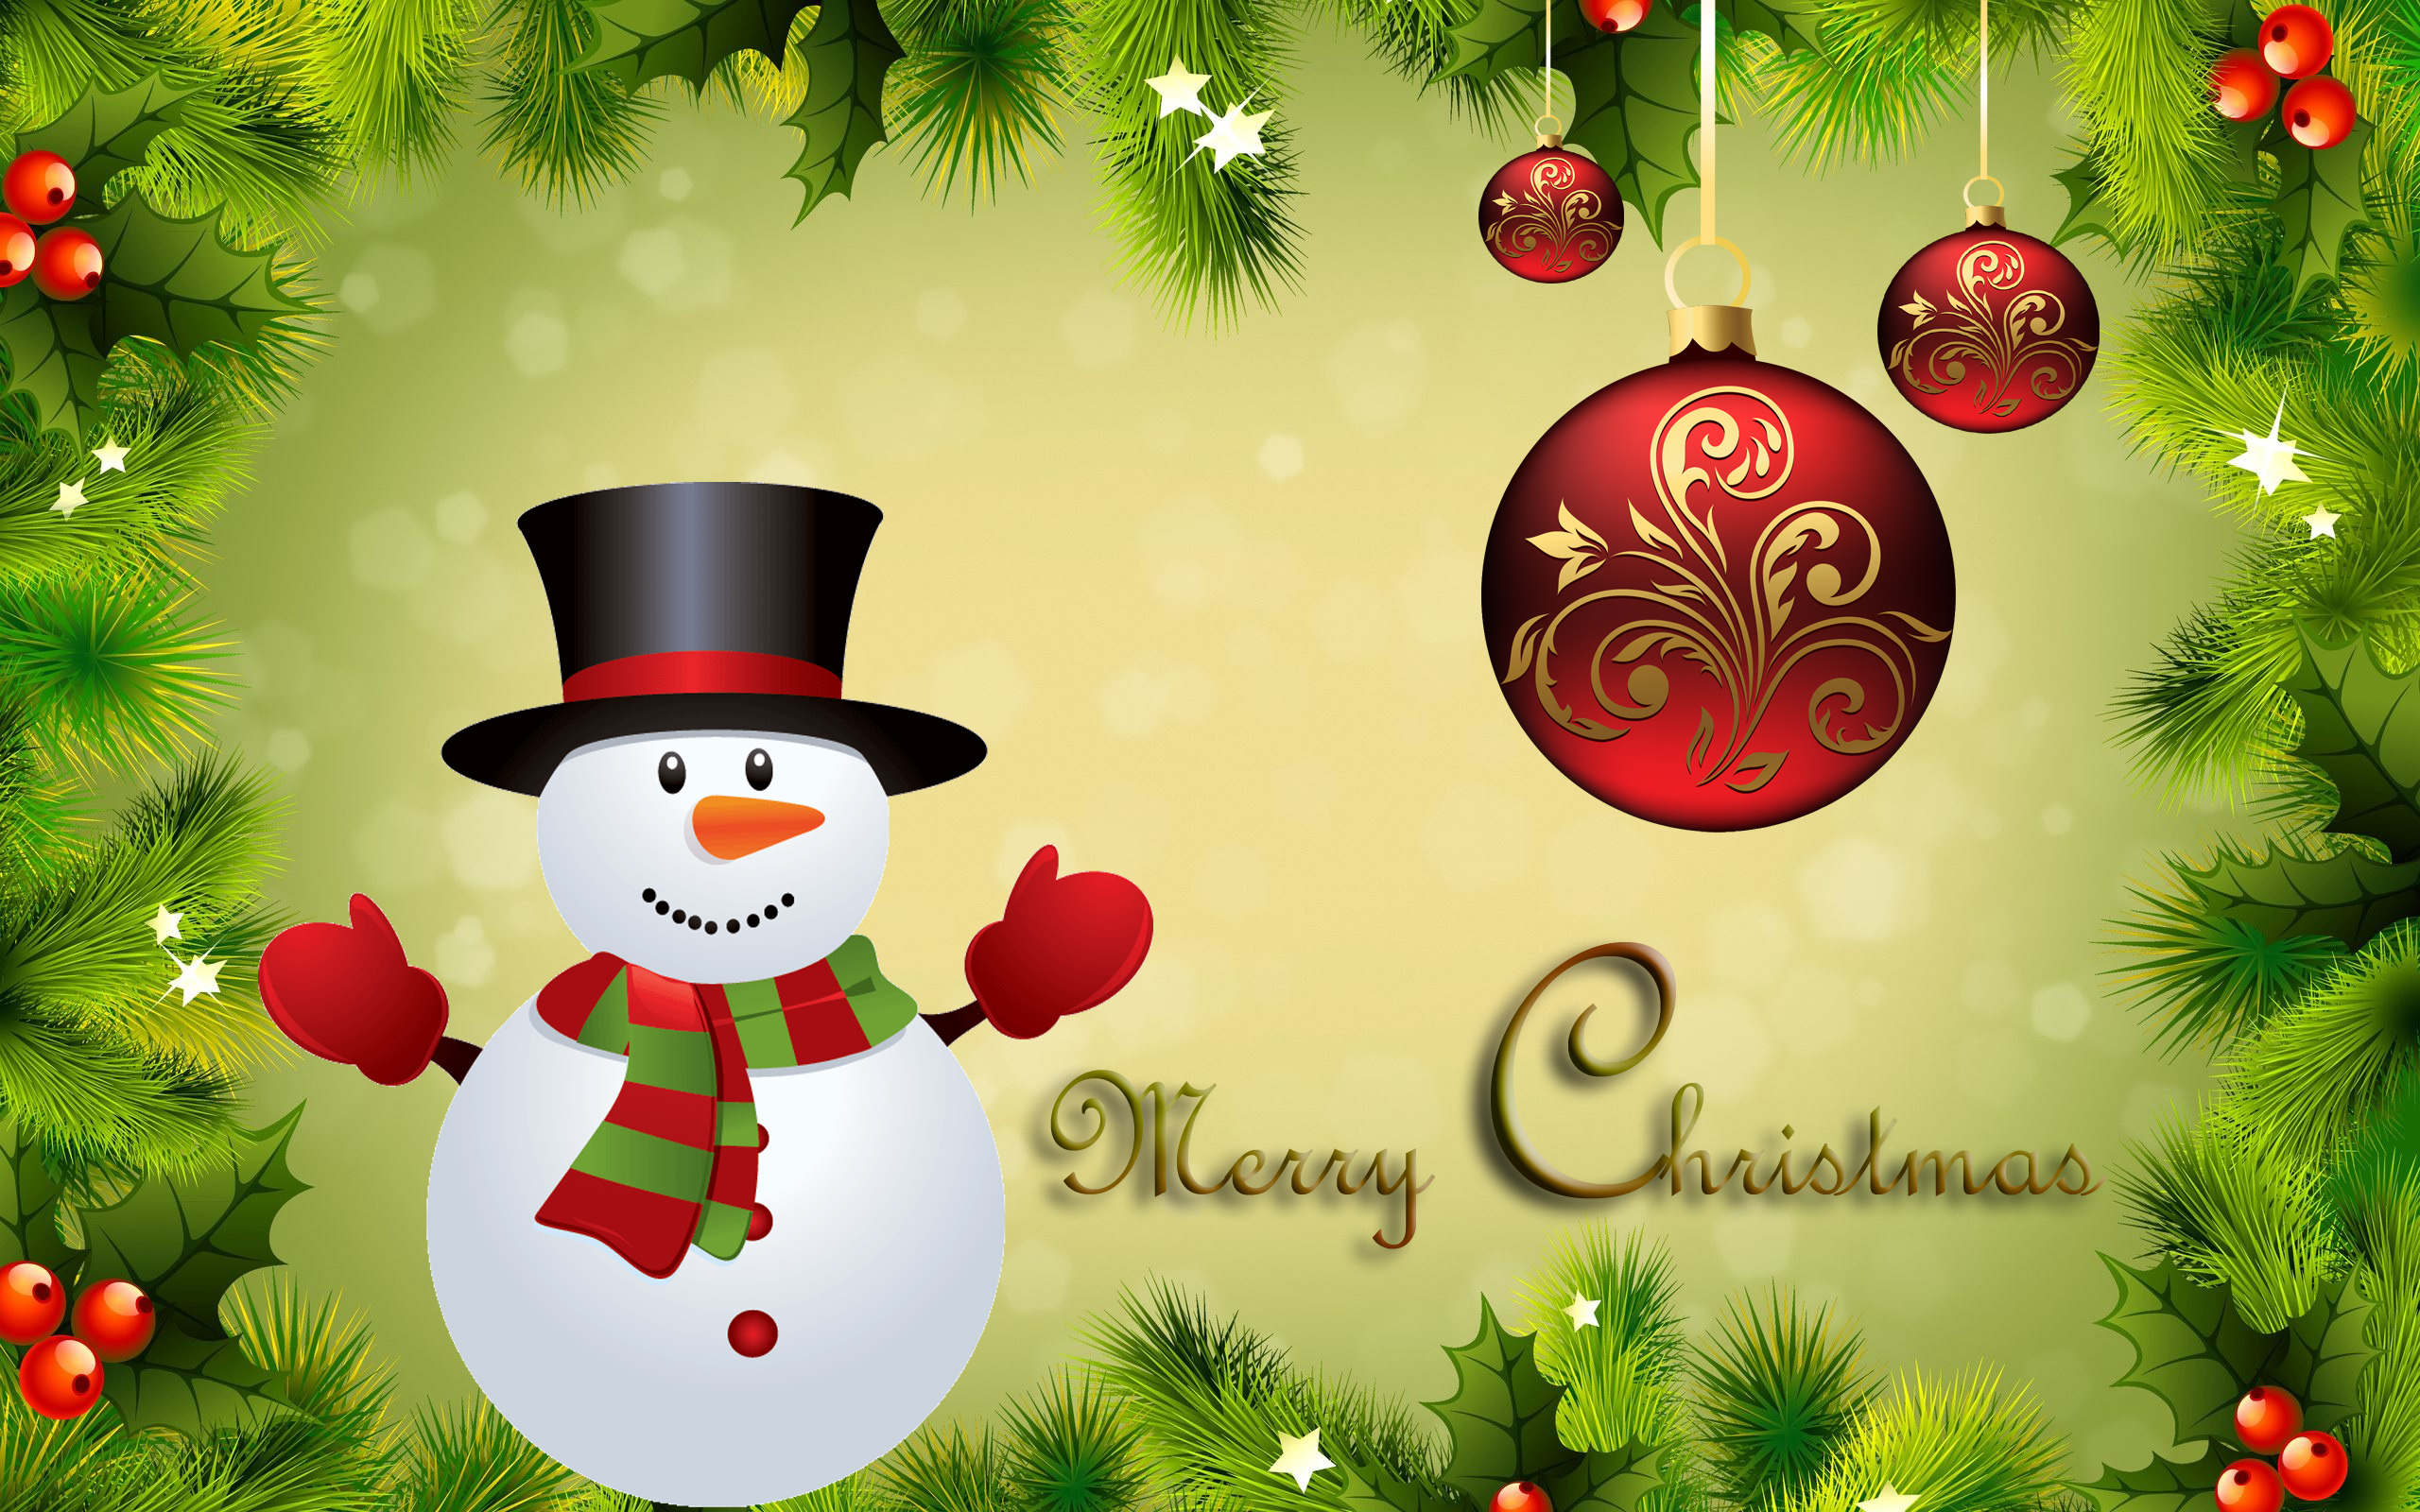 Merry Christmas 2014 Photo - Wallpaper, High Definition, High ...